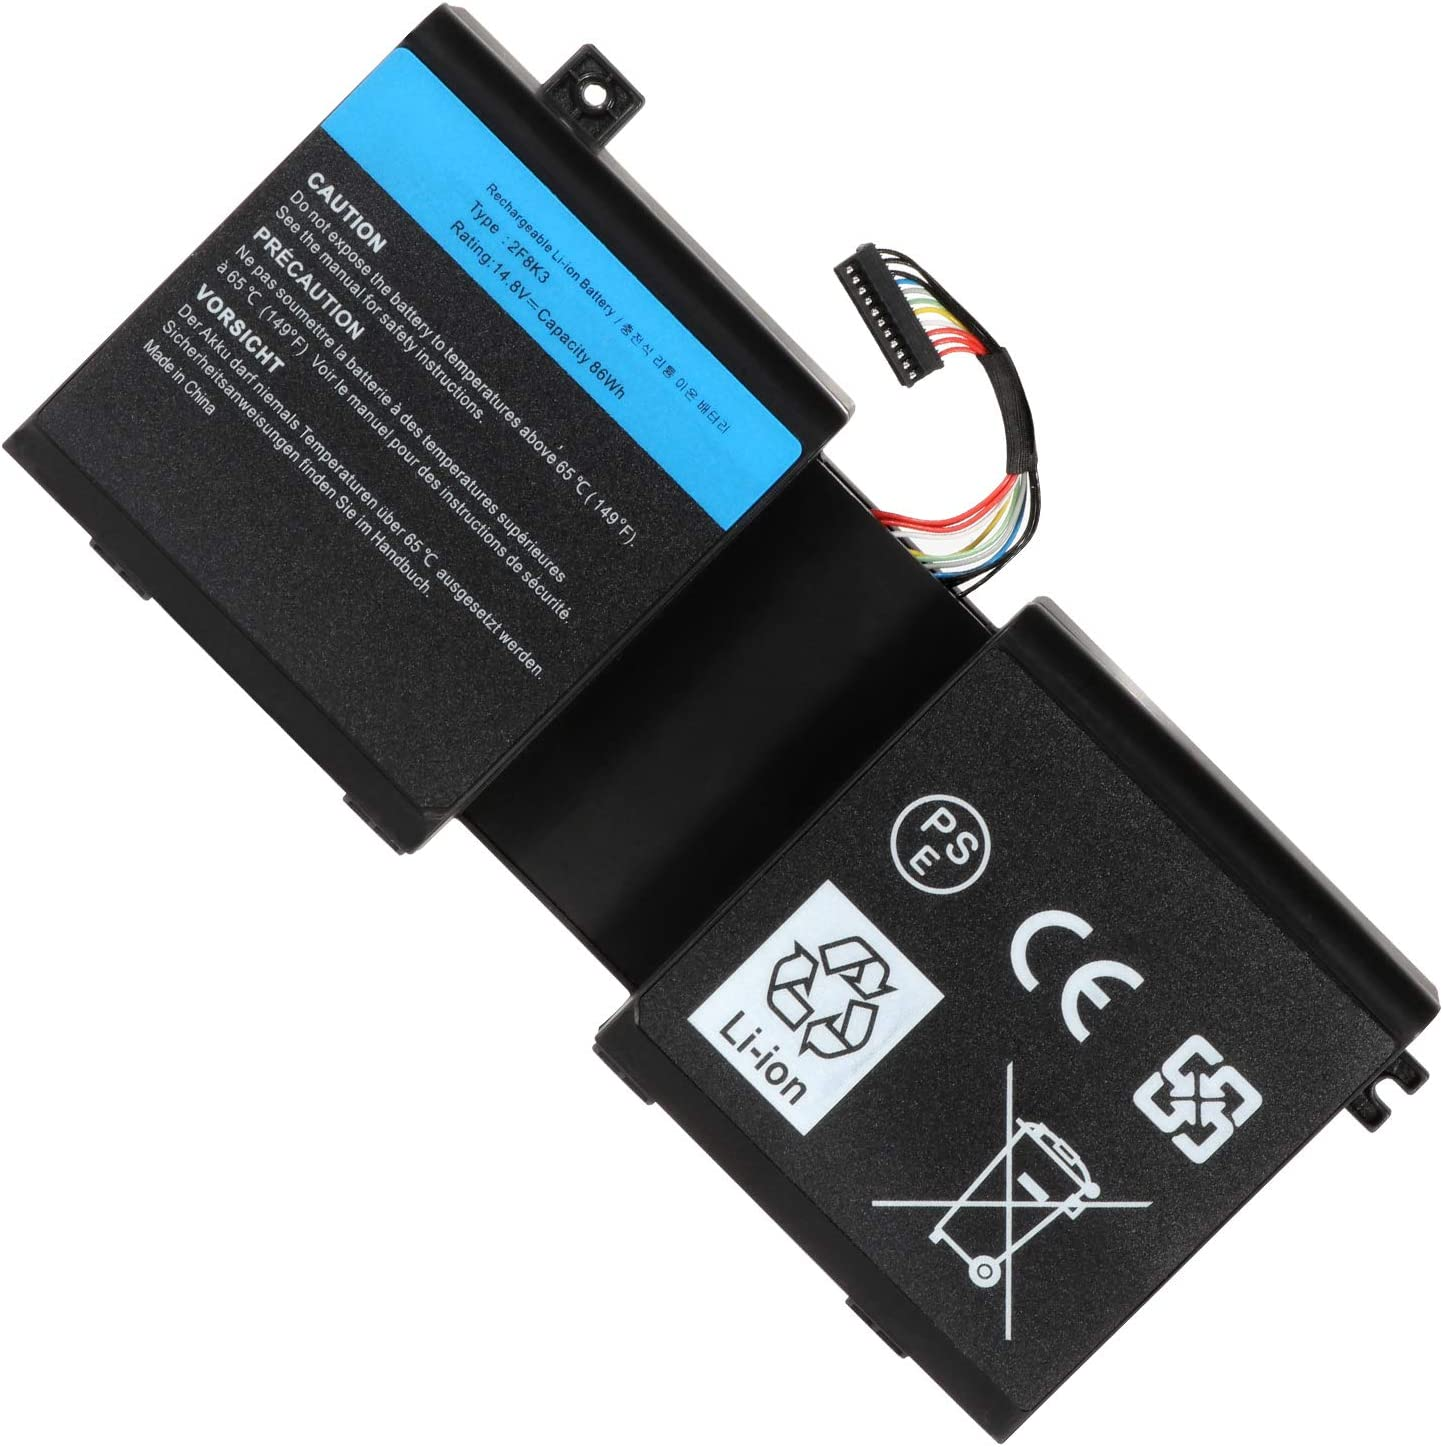 2F8K3 M18X Replacement Battery Compatible with Dell Alienware M17X R5 / M18X R3, 2F8K3 02F8K3 G33TT 0G33TT 0KJ2PX KJ2PX (86Wh 14.8V)